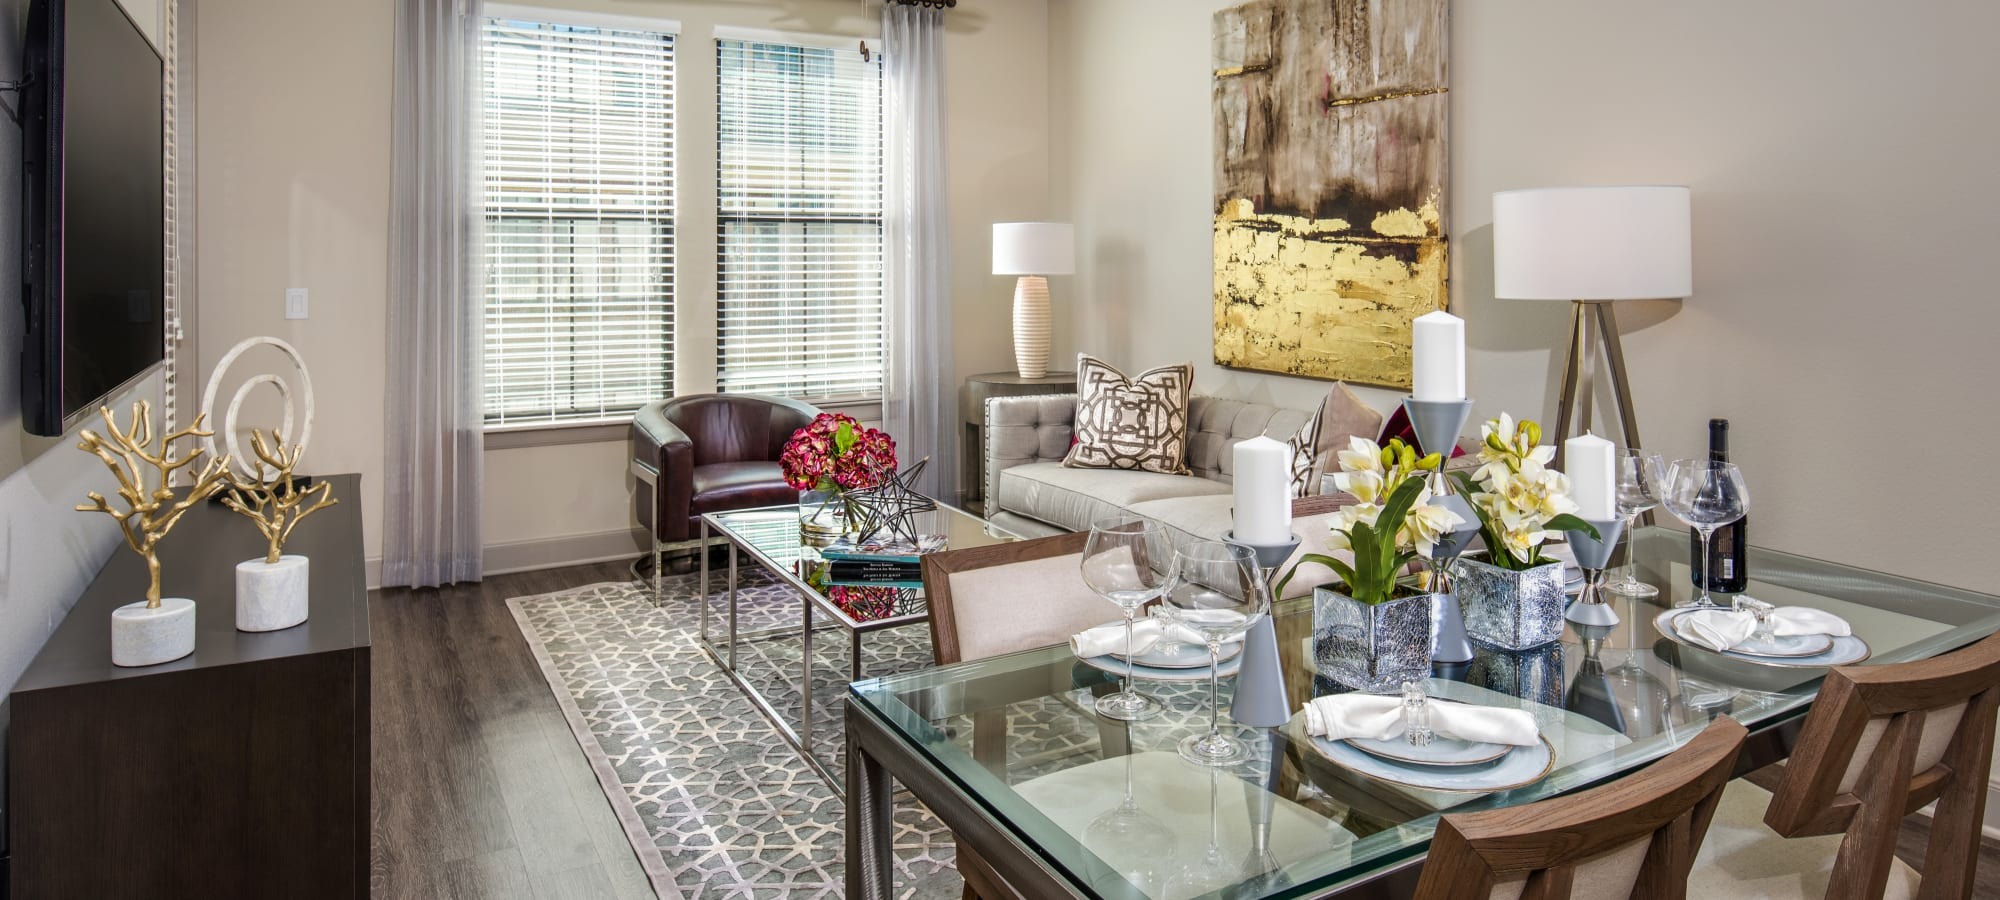 Dining and living areas in a model home at The Core Scottsdale in Scottsdale, Arizona